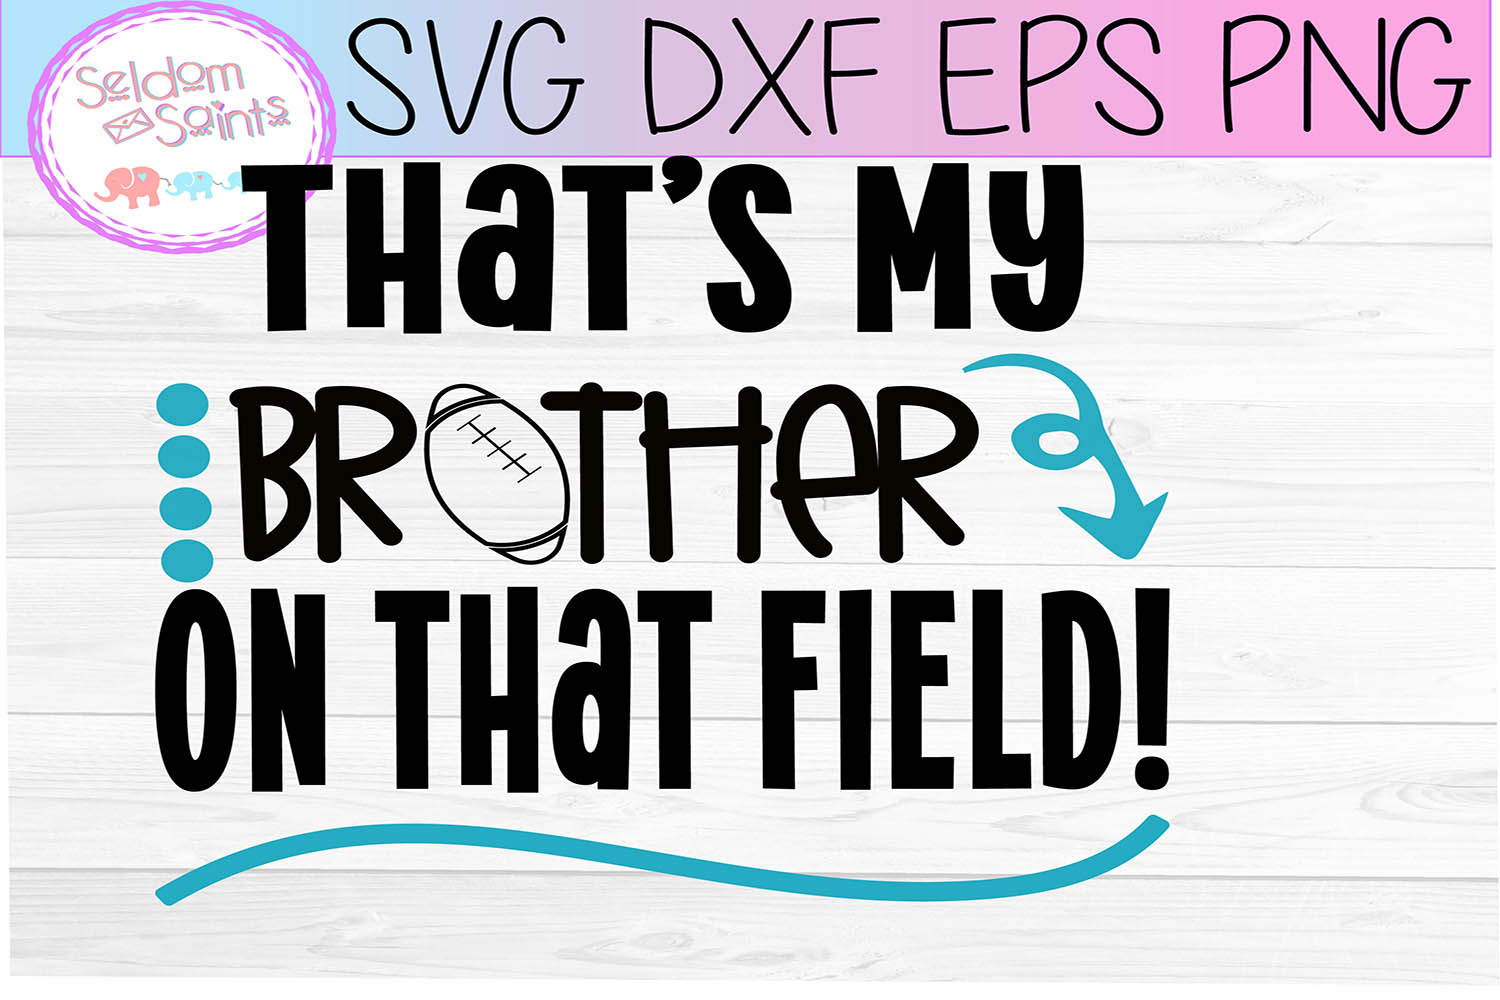 That's My Brother Out On That Field! SVG PNG DXF EPS example image 2